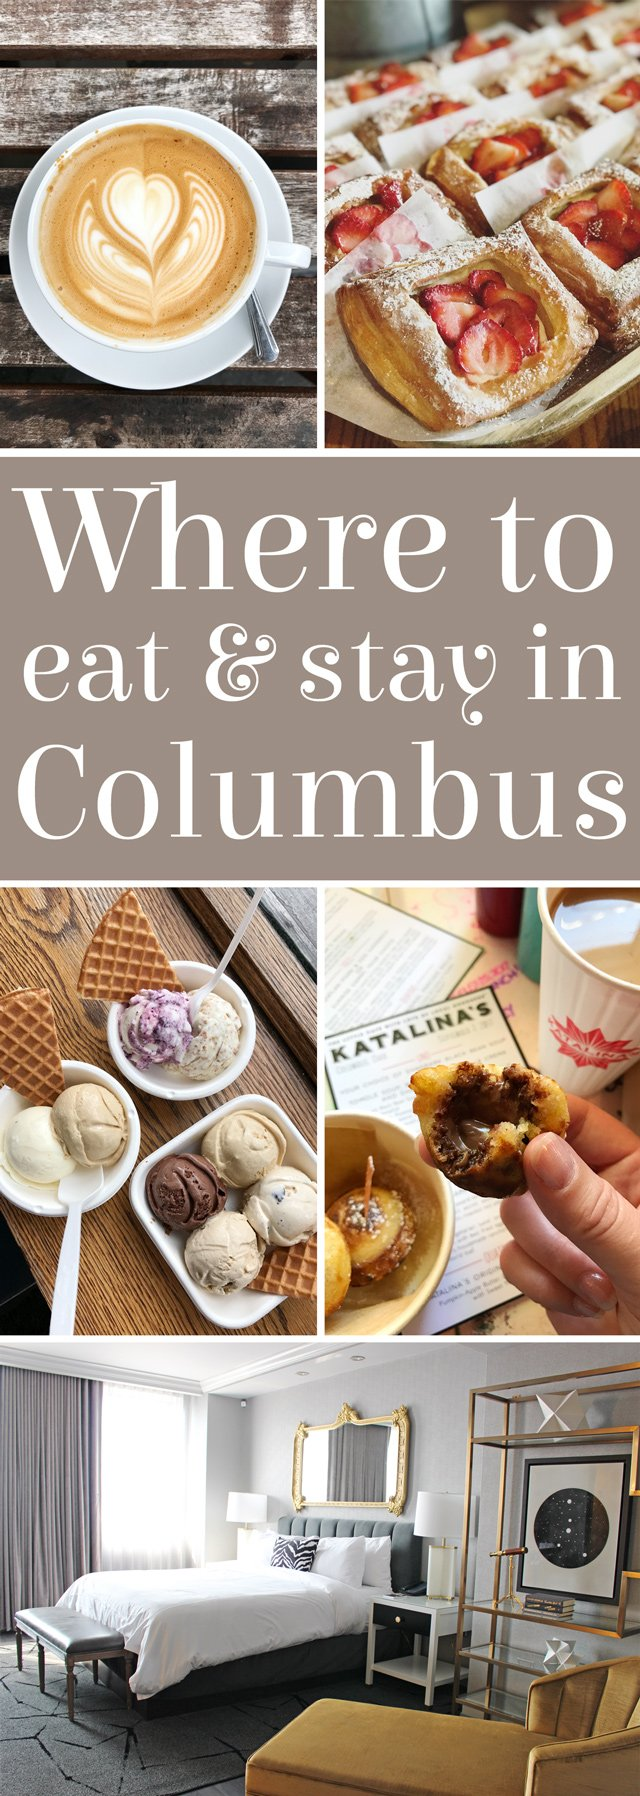 Where to eat and stay in Columbus, Ohio